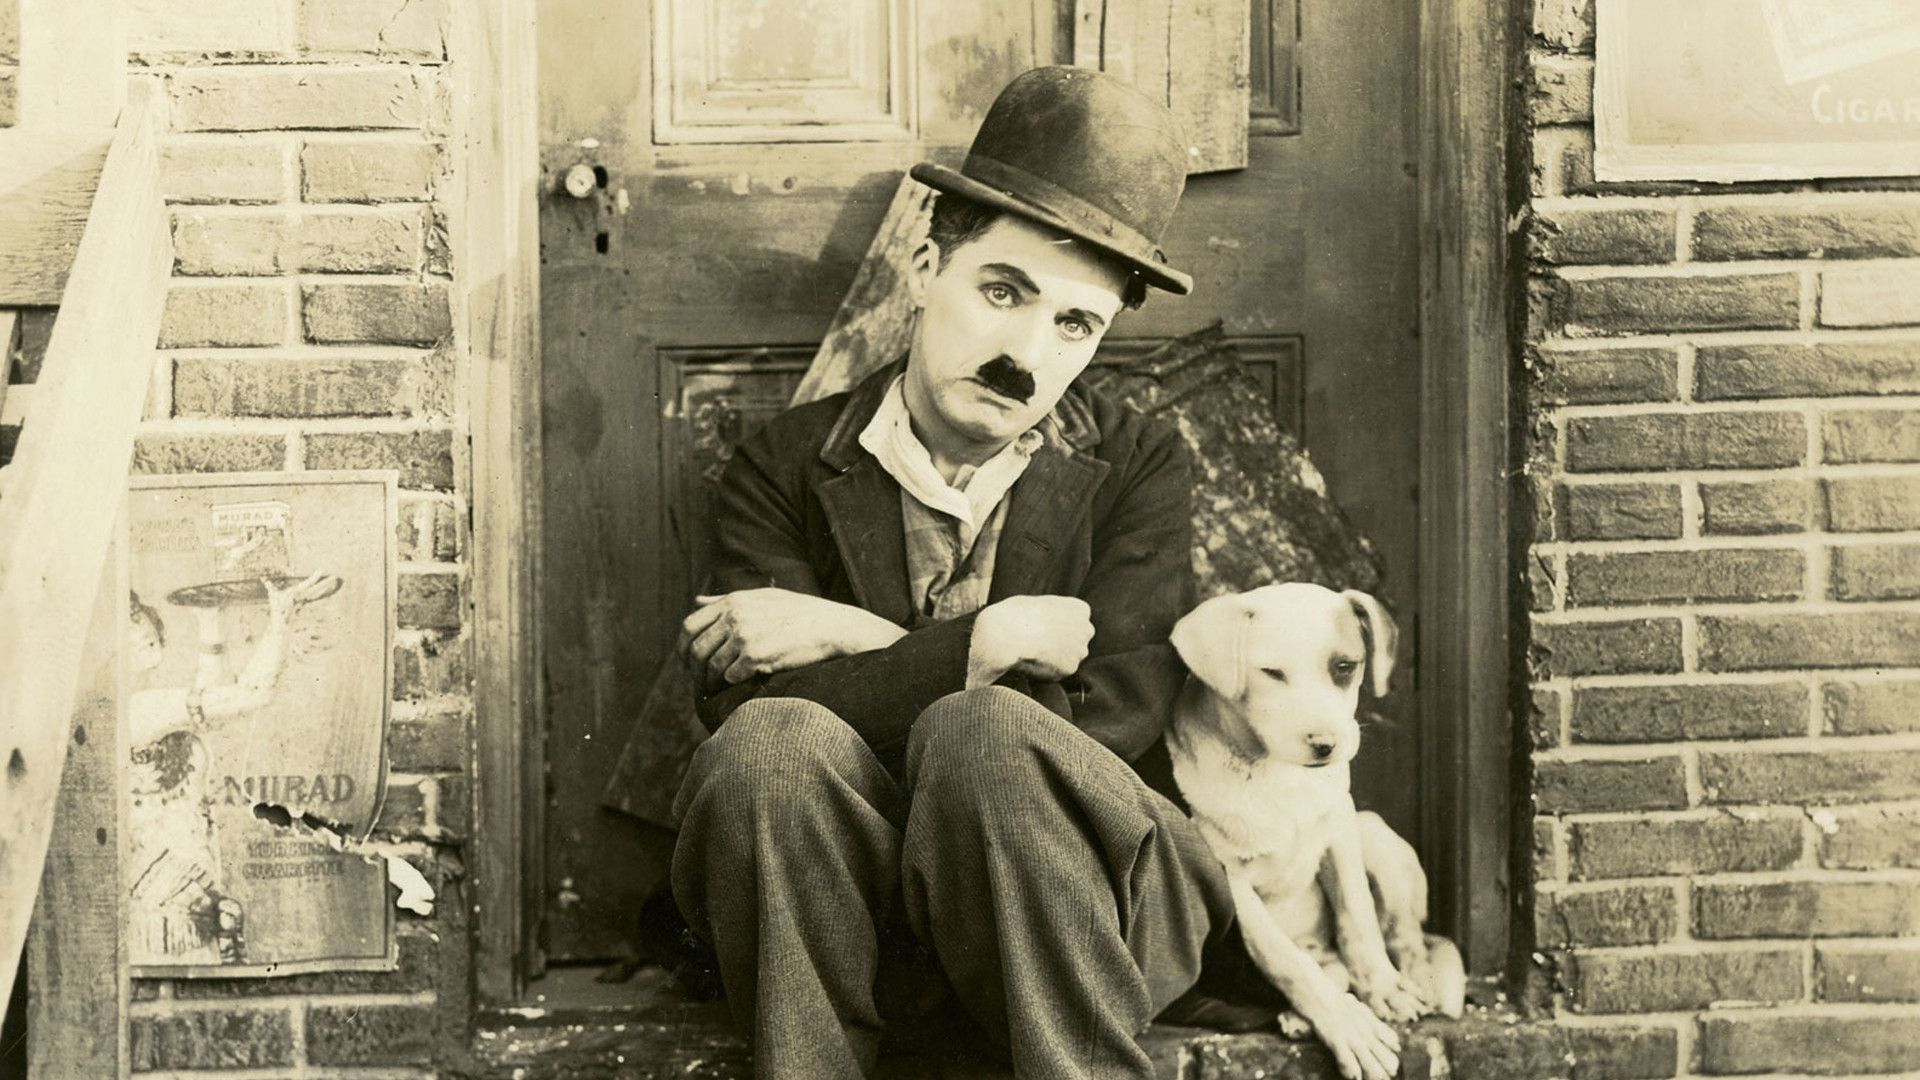 an introduction to the life and film by charlie chaplin It was the last film using the tramp, and ends with chaplin pleading for love and freedom it was with these more involved productions of the 1930s and 1940s that chaplin achieved true greatness as a film director.